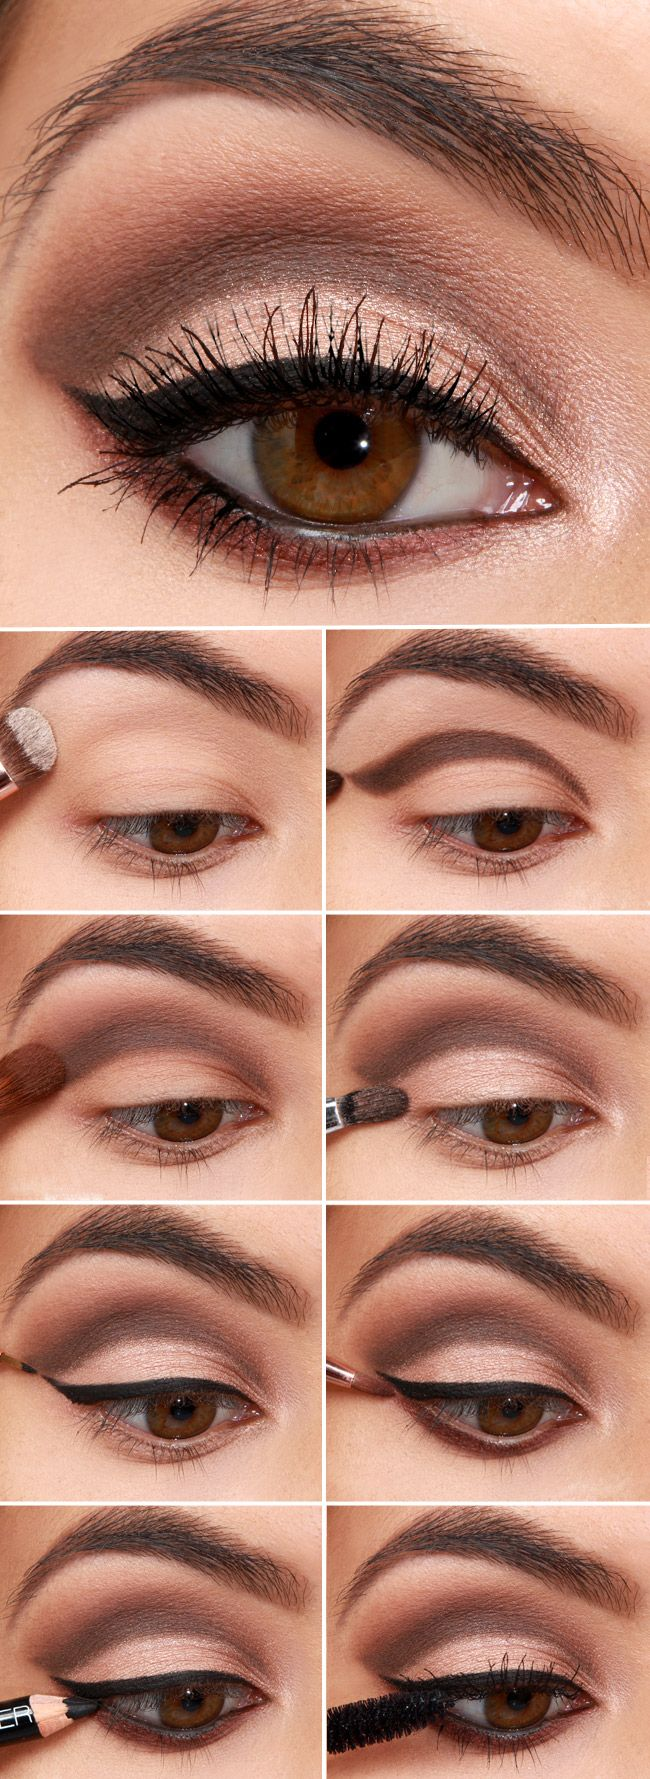 How-To: Bridal Eye Makeup Tutorial